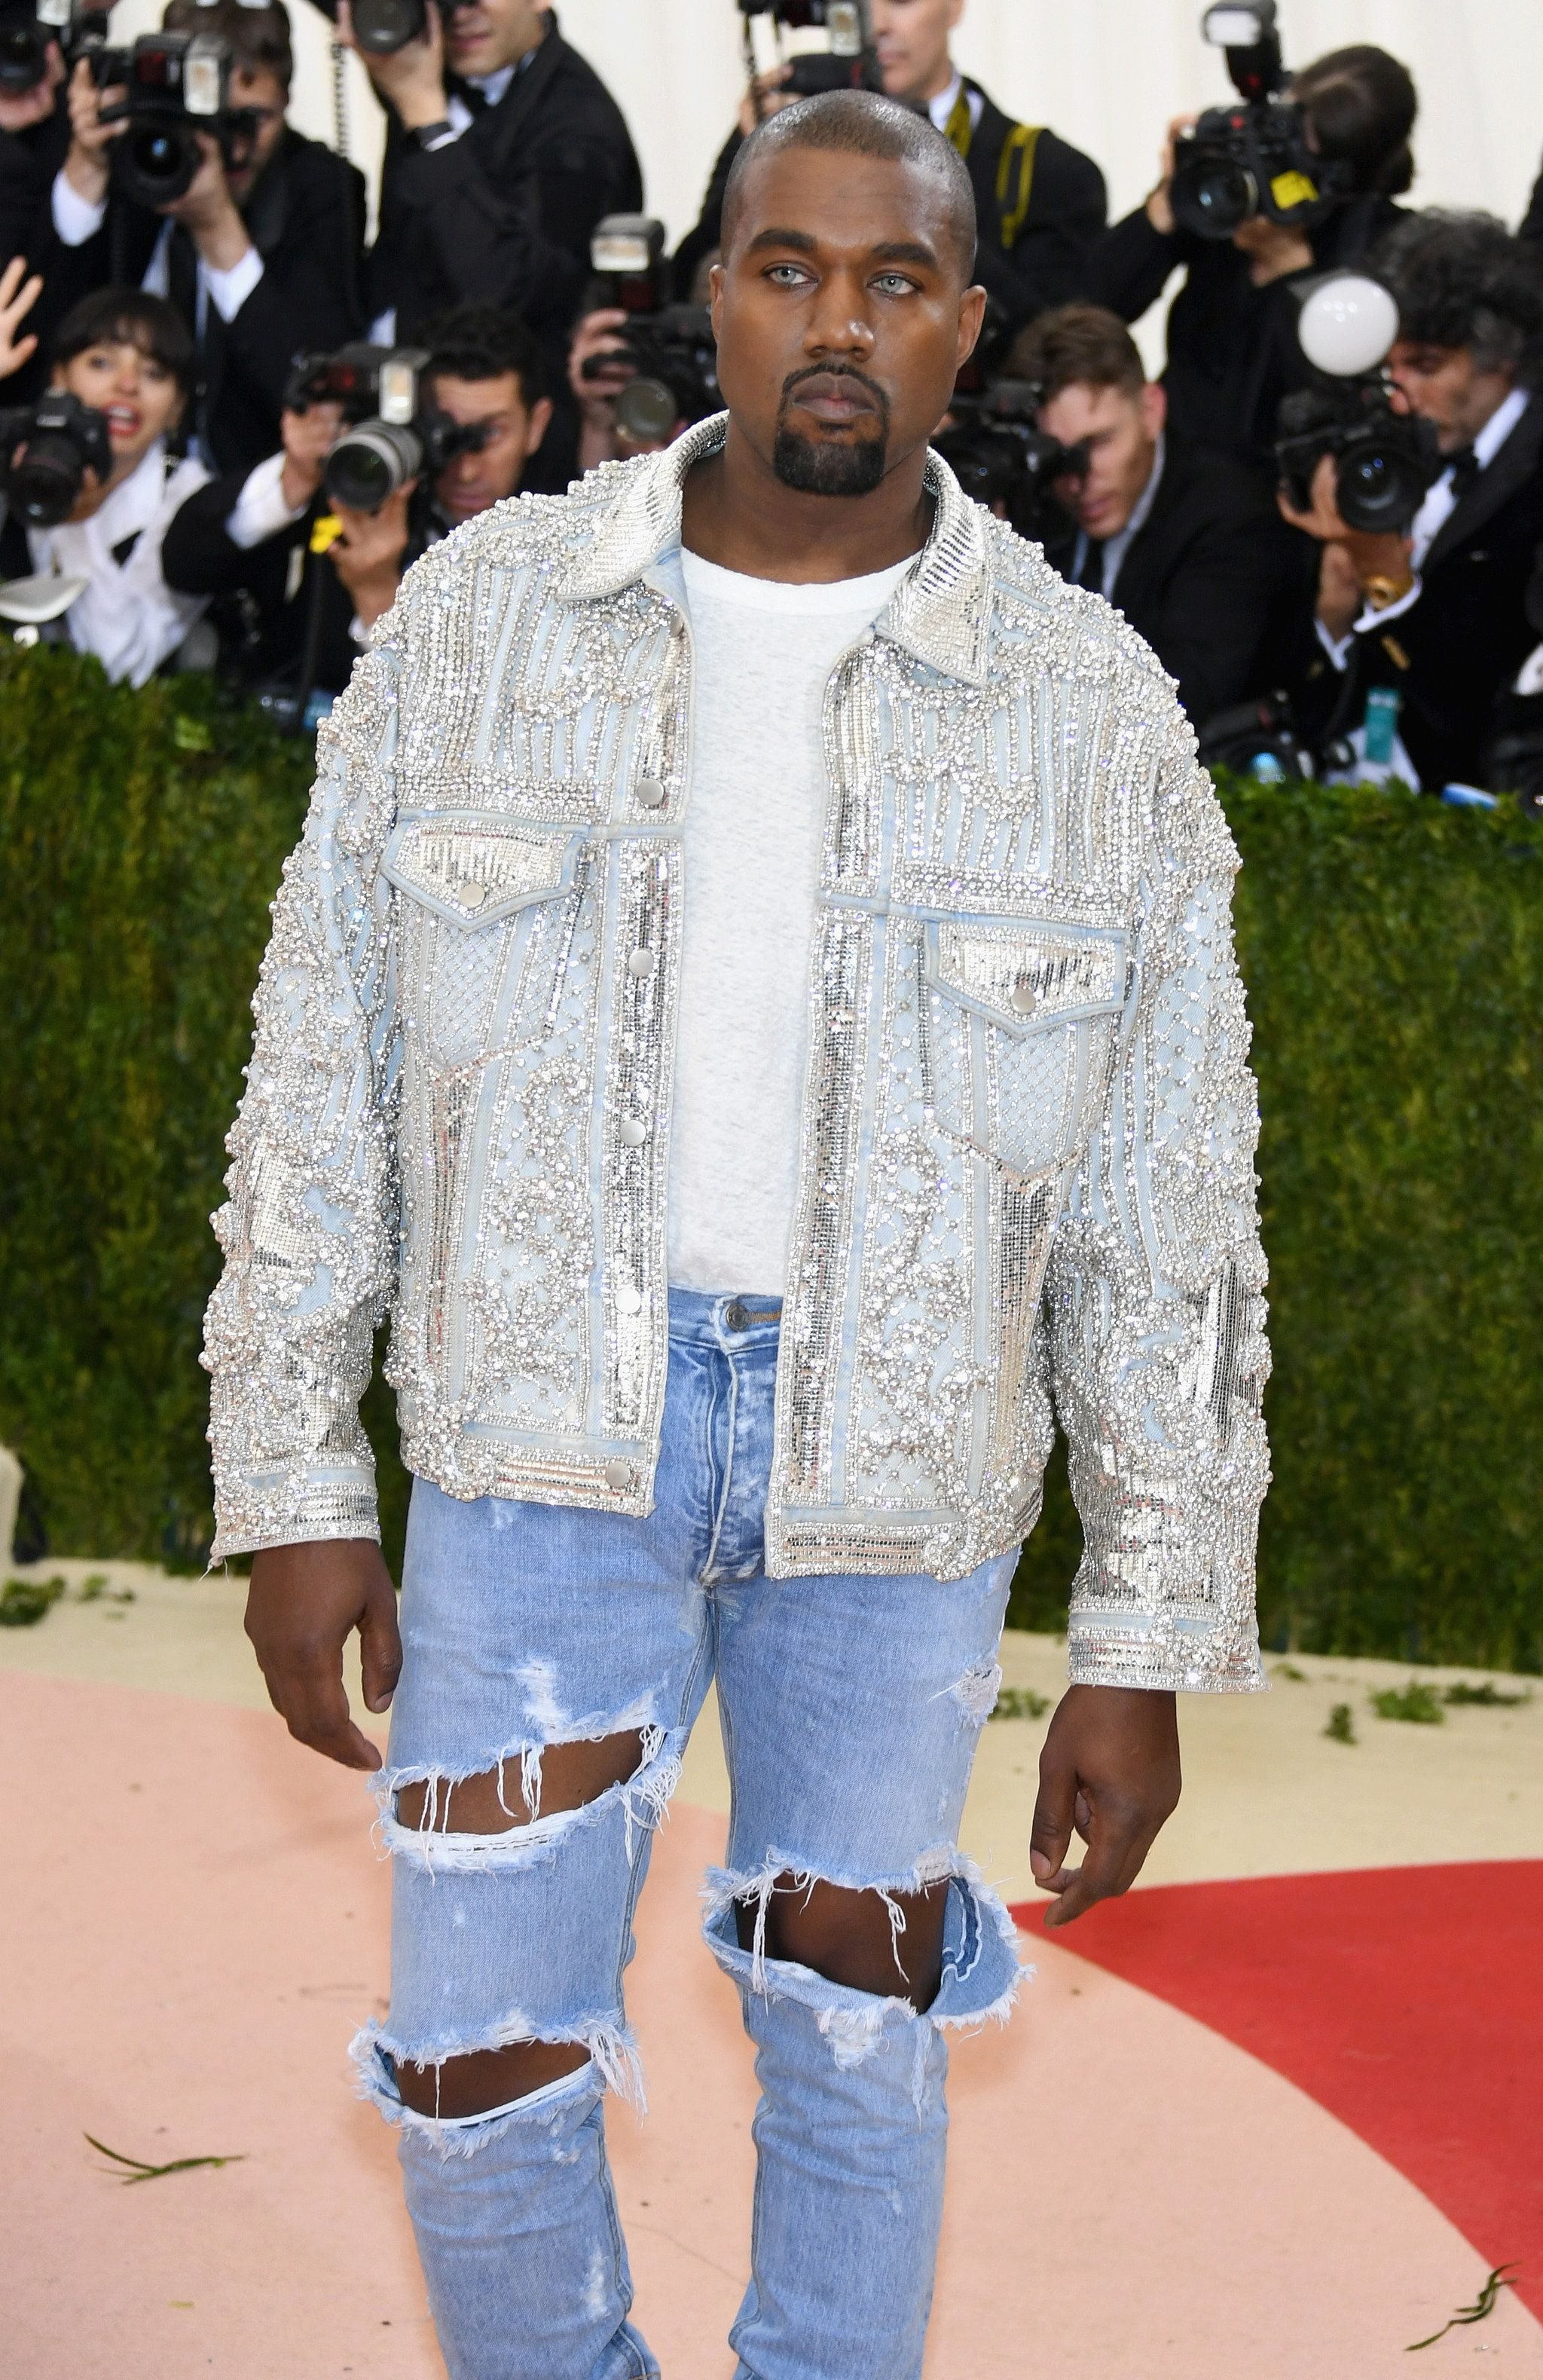 Kanye West Net Worth 2020 Age Height Weight Wife Kids Bio Wiki In 2020 Kanye West Bio Most Popular Rappers American Rappers